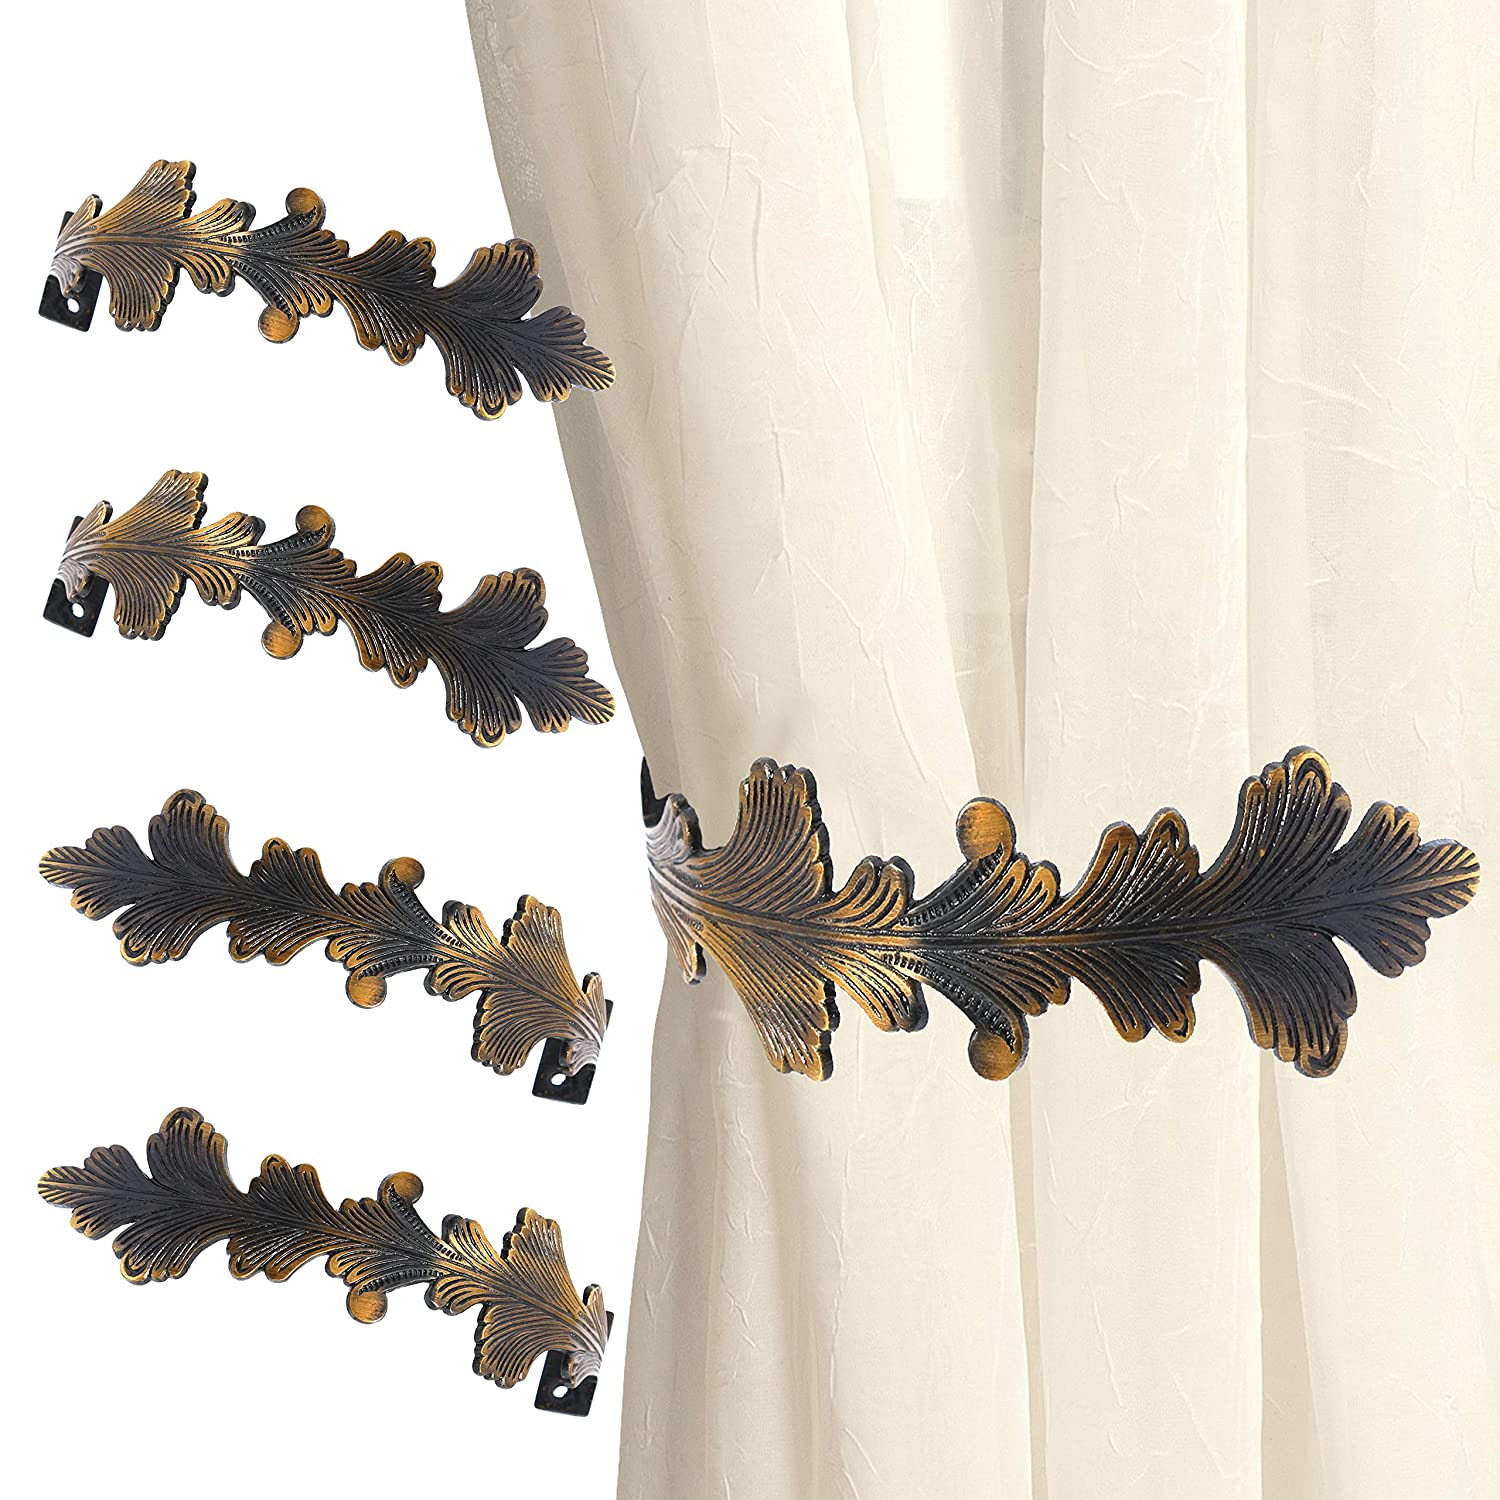 4x Large Antique Brass Curtain Hold Backs - Leaf Design Drape Holders/Arms White Hinge